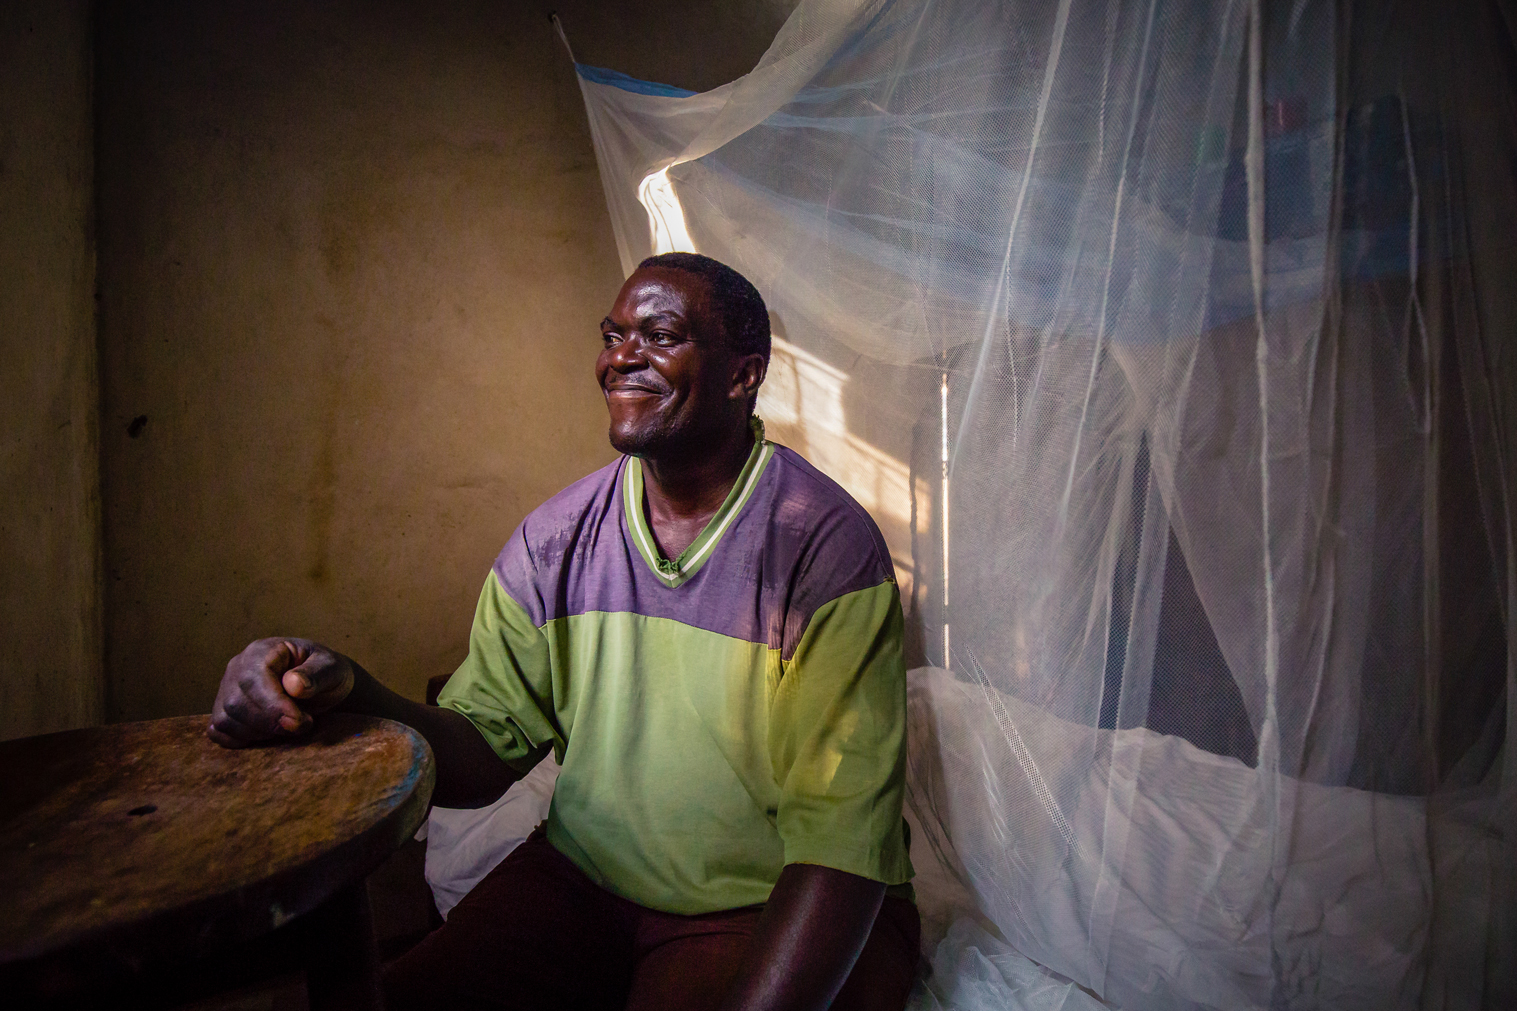 This is Timothy, a Ugandan living in a rural village near Namungalwe, Iganga District, Uganda. In all of Uganda, malaria is a constant risk, but especially so in the villages.  Here, Timothy displays his mosquito net, the first line of defense against malaria, which was provided by the Uganda Village Project. Taken in Iganga District, Uganda. July 2018. Photo by Ben Blankenship.